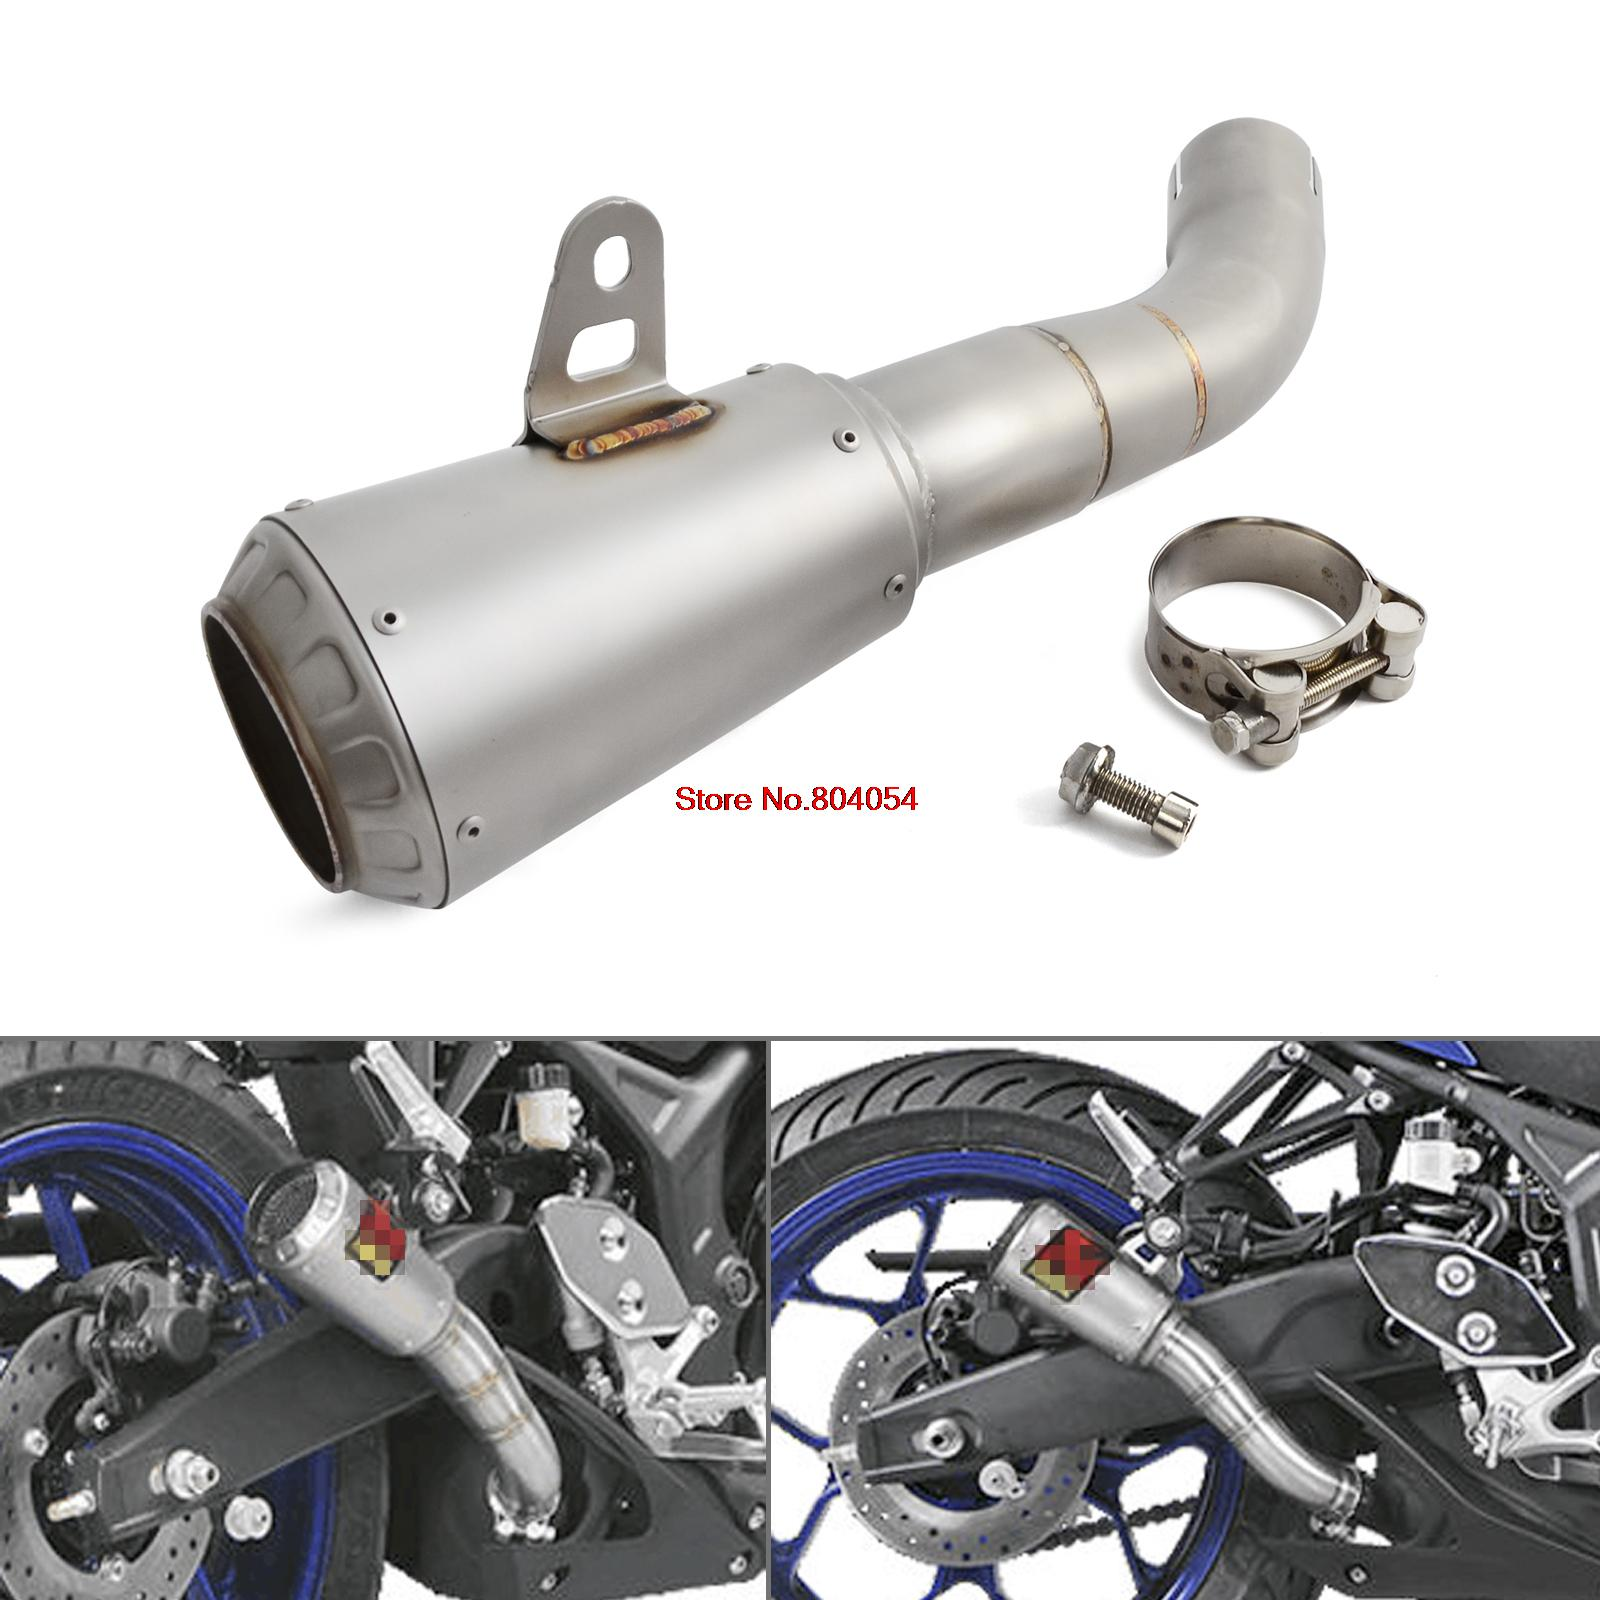 H2CNC Motorcycle Parts Stainless Steel Slip On Exhaust For Yamaha YZF-R3 YZF-R25 MT-03 MT03 2015 2016 2017 2018 YZF R3 R25 цена